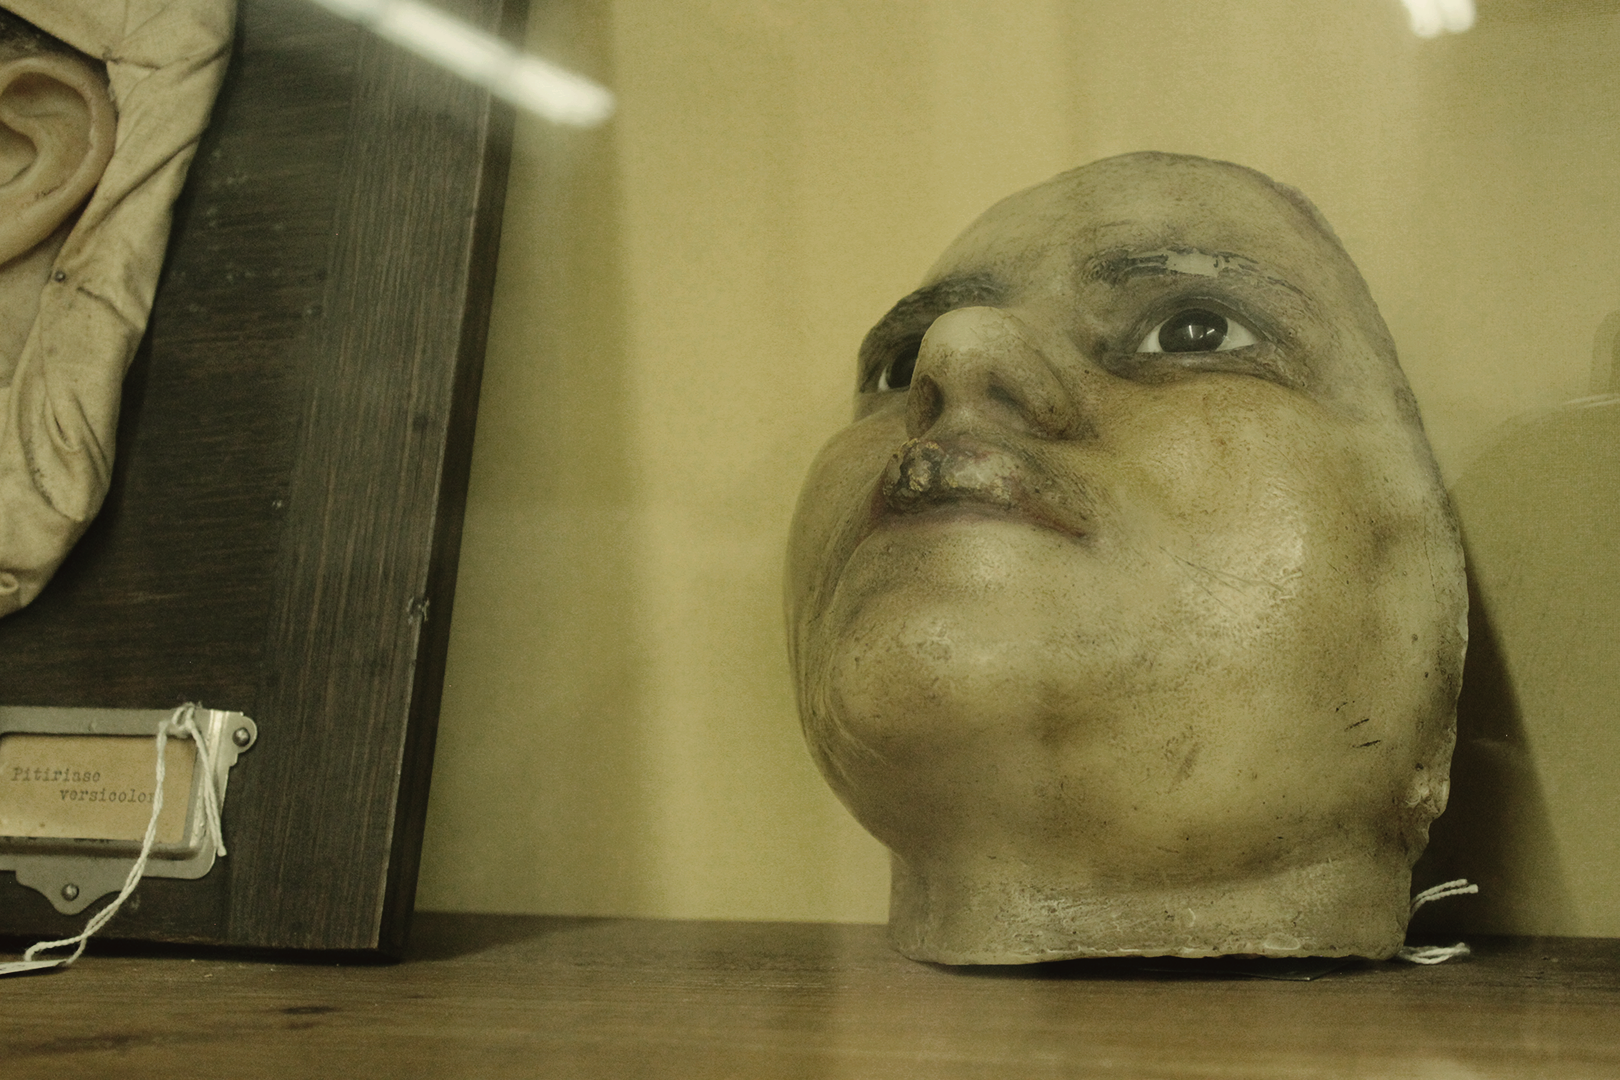 Wax model of mouth cancer, Museum of Portuguese Dermatology (Museu da Dermatologia Portuguesa).